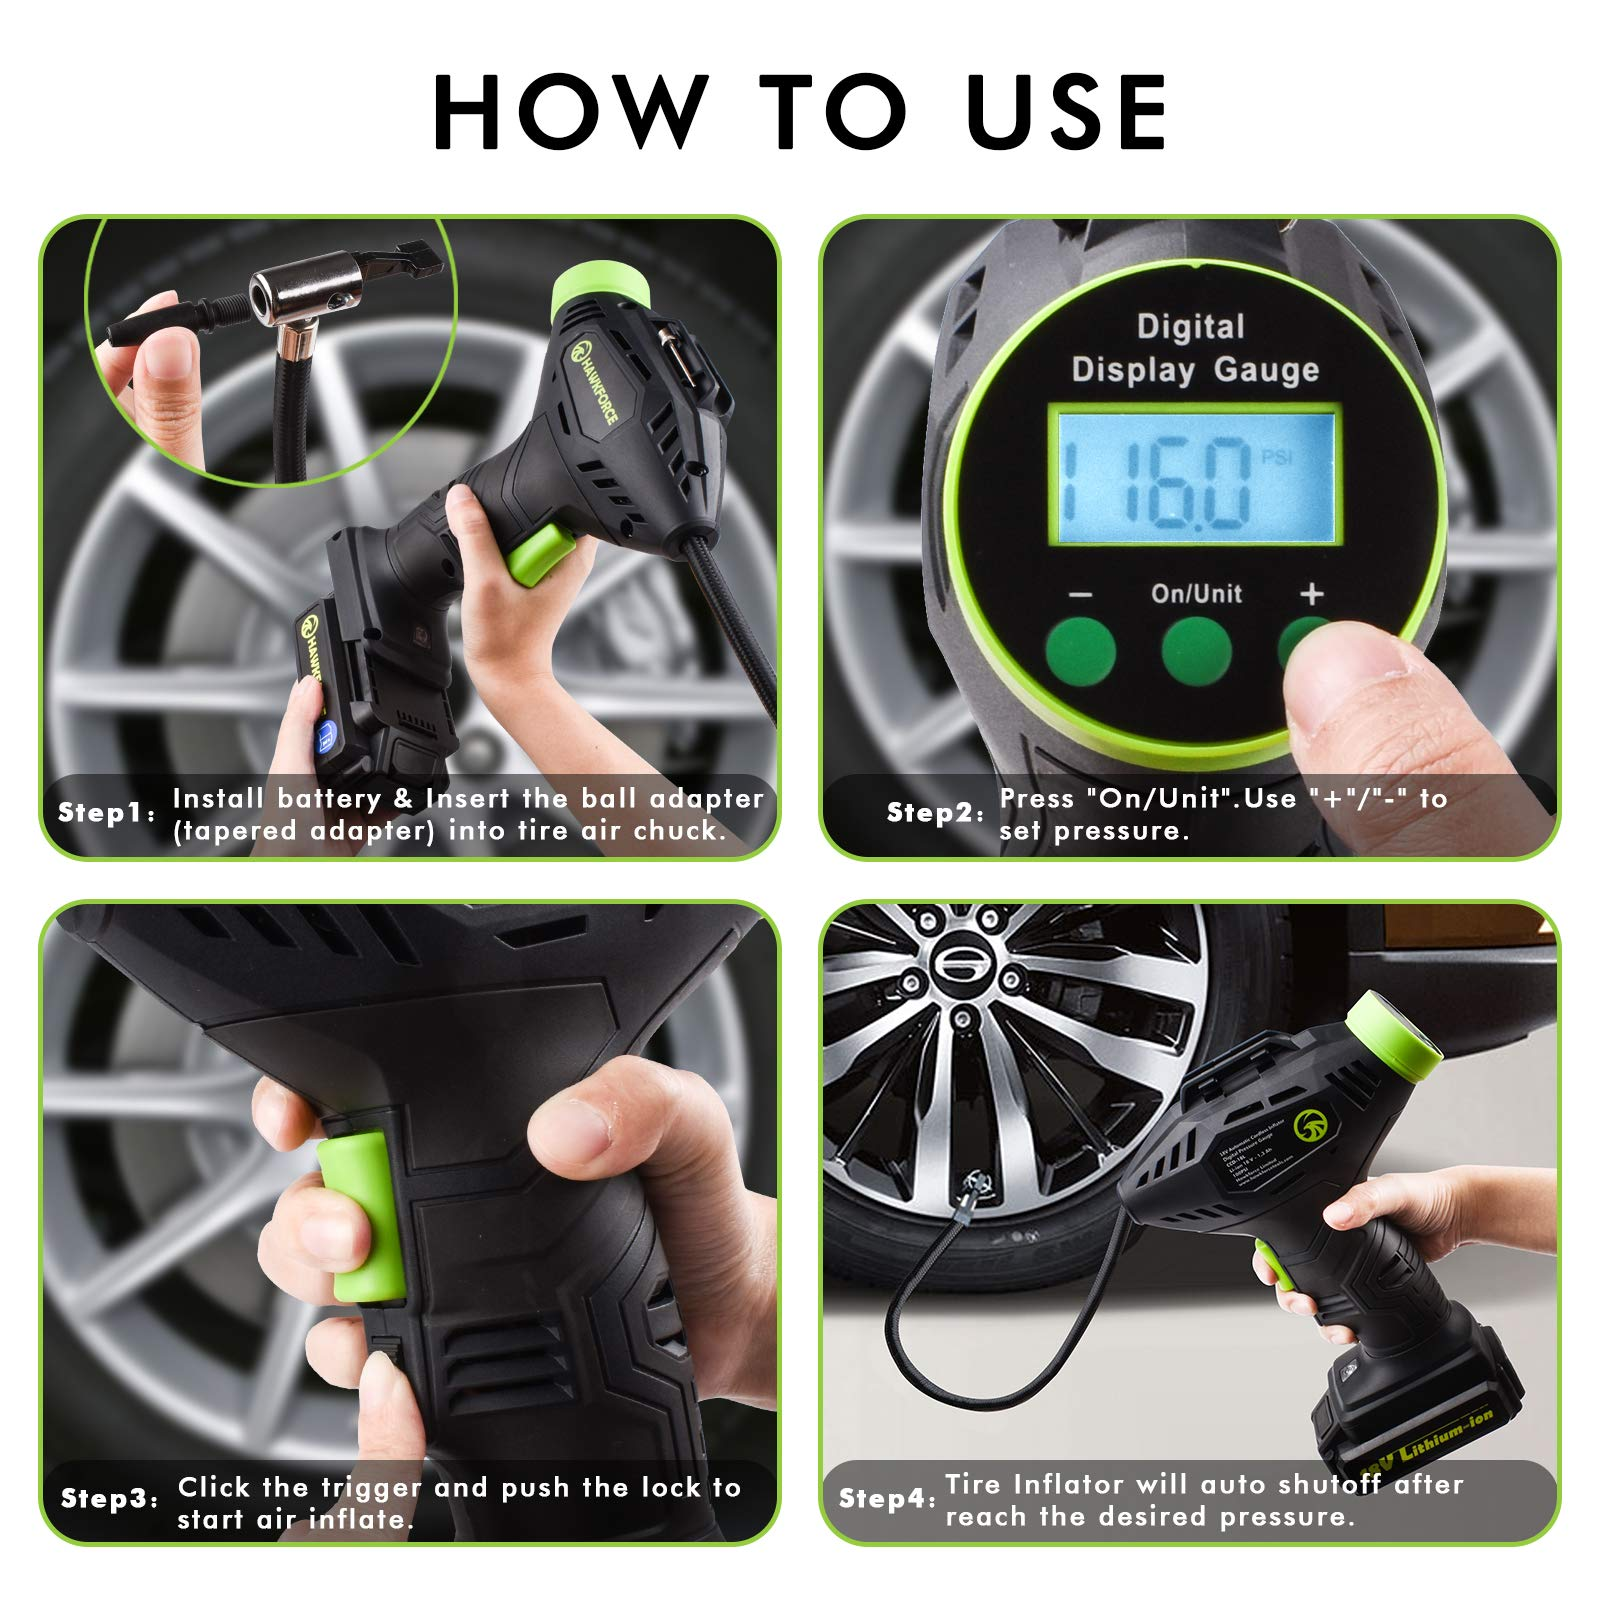 Tire inflator, Hawkforce Cordless Portable Air Compressor Automatic Car Tire Air Pump with Easy to Read Digital Pressure Gauge, Built-in LED Light and 2 Needles